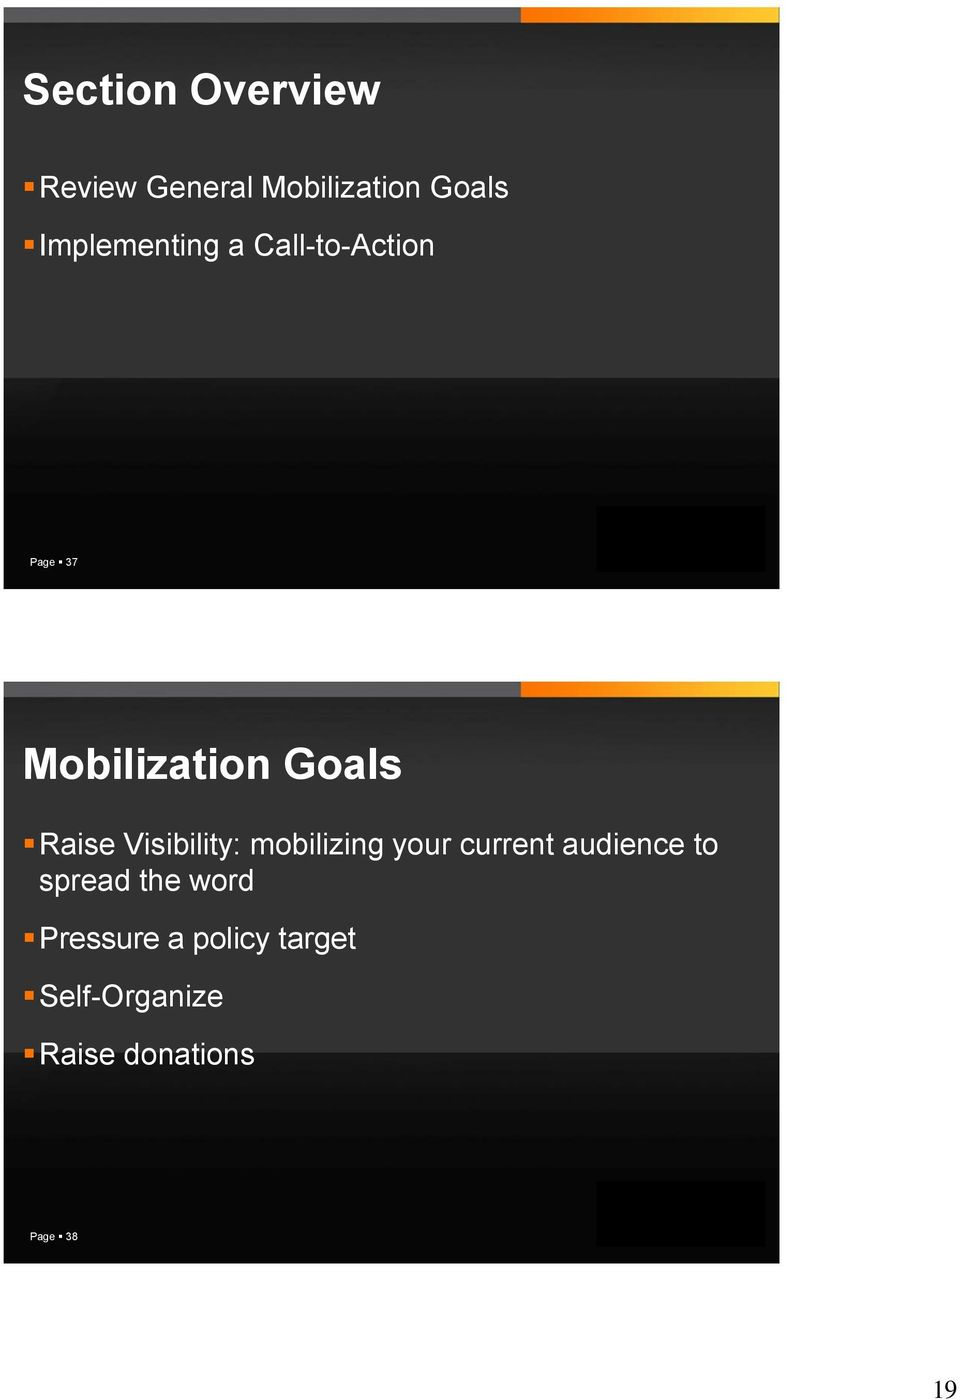 Raise Visibility: mobilizing your current audience to spread